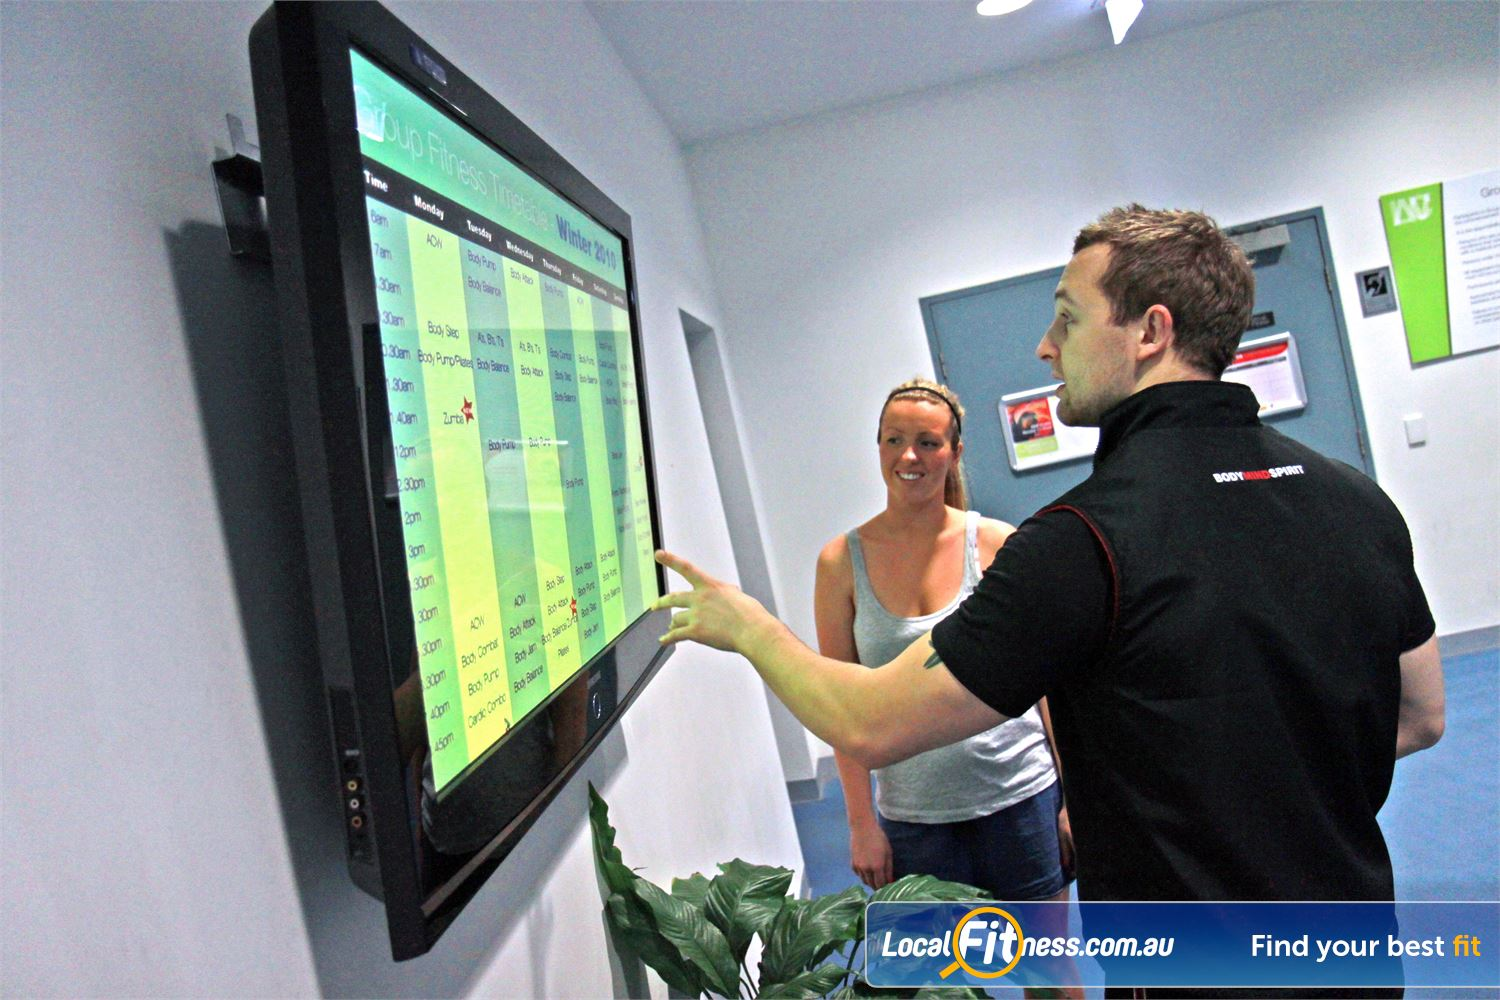 Ascot Vale Leisure Centre Ascot Vale See the latest changes and timetables with the group fitness display system.